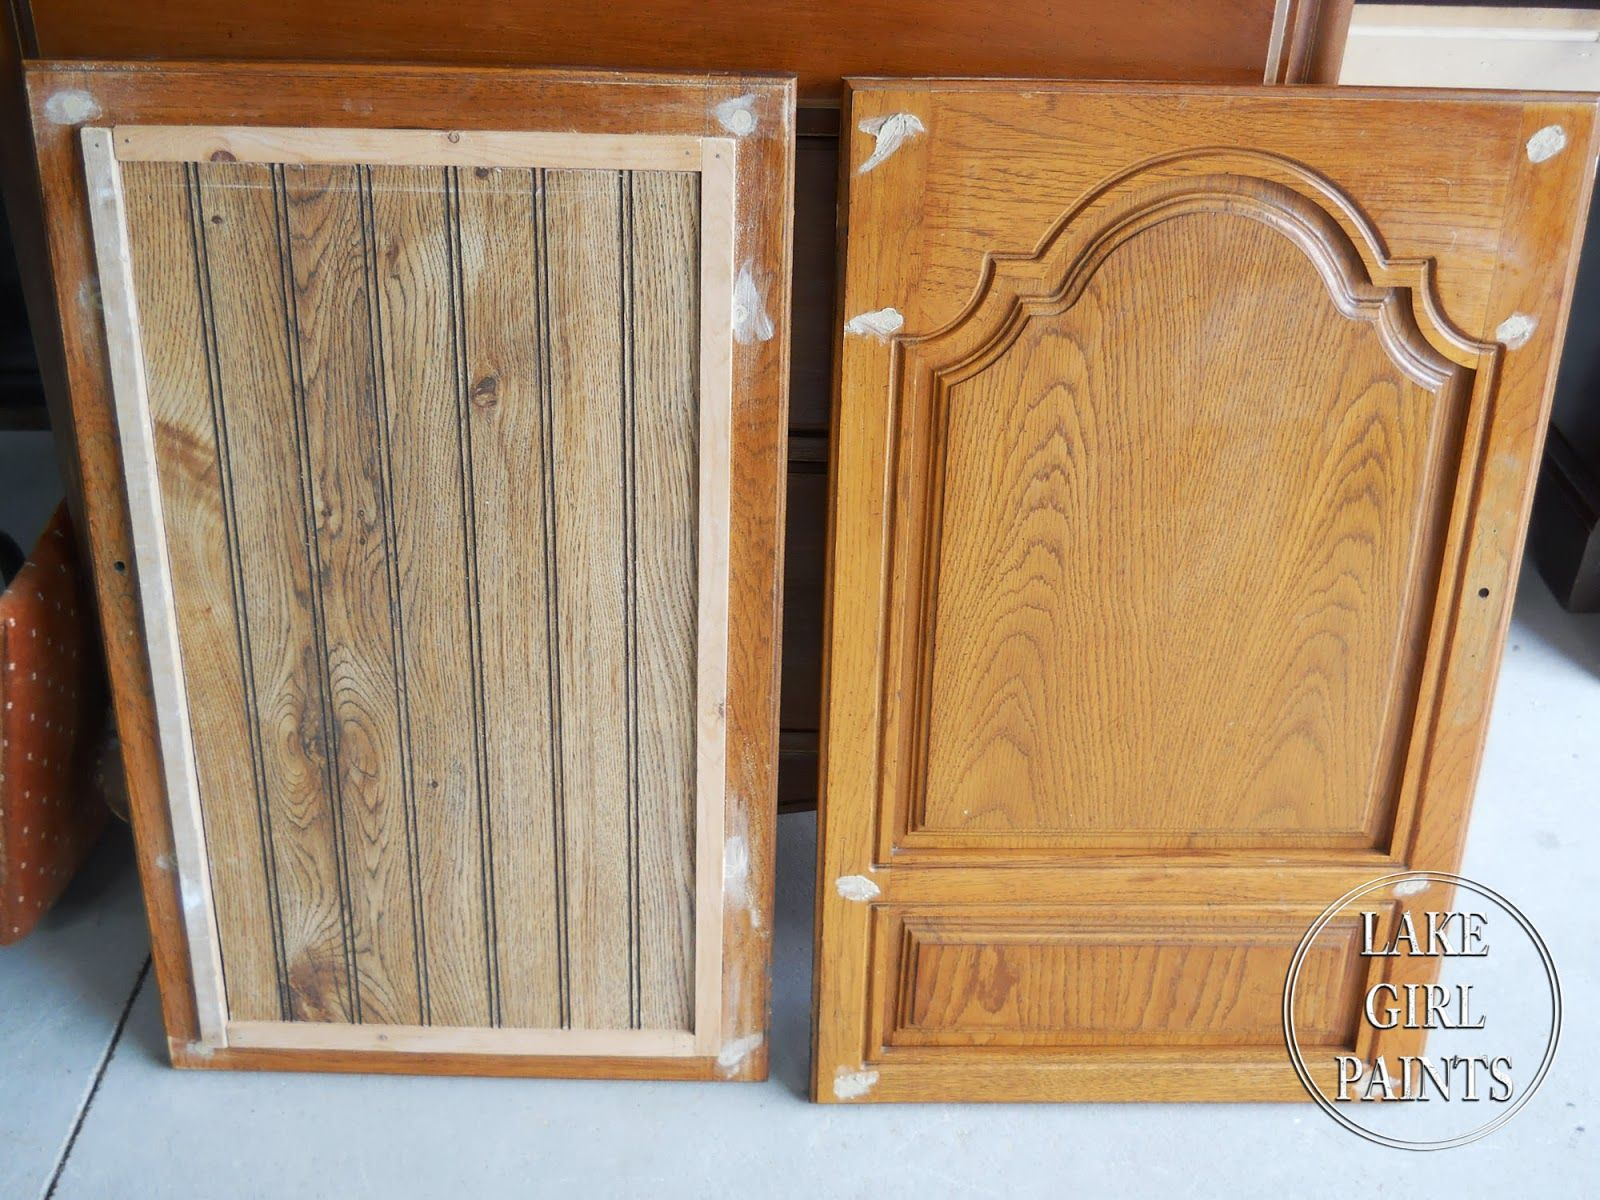 Lake Girl Paints: Old Entertainment Center gets Beadboard Trendy ...